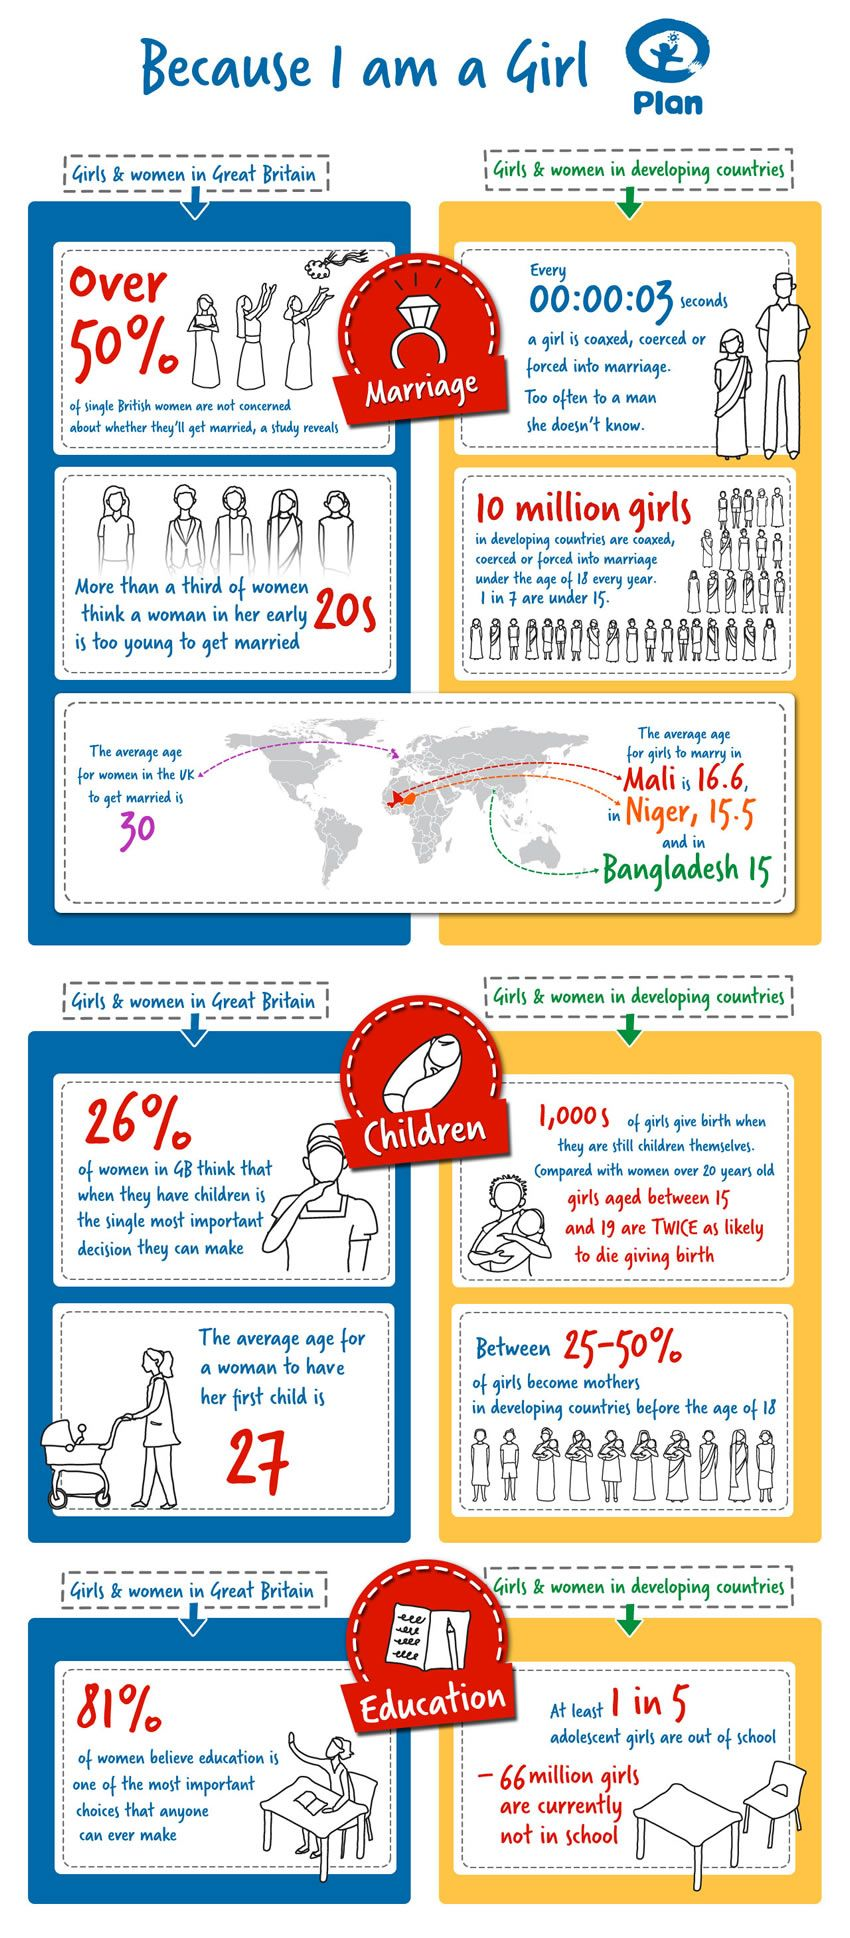 Choices For Girls Infographic Infographic Health How To Plan Infographic